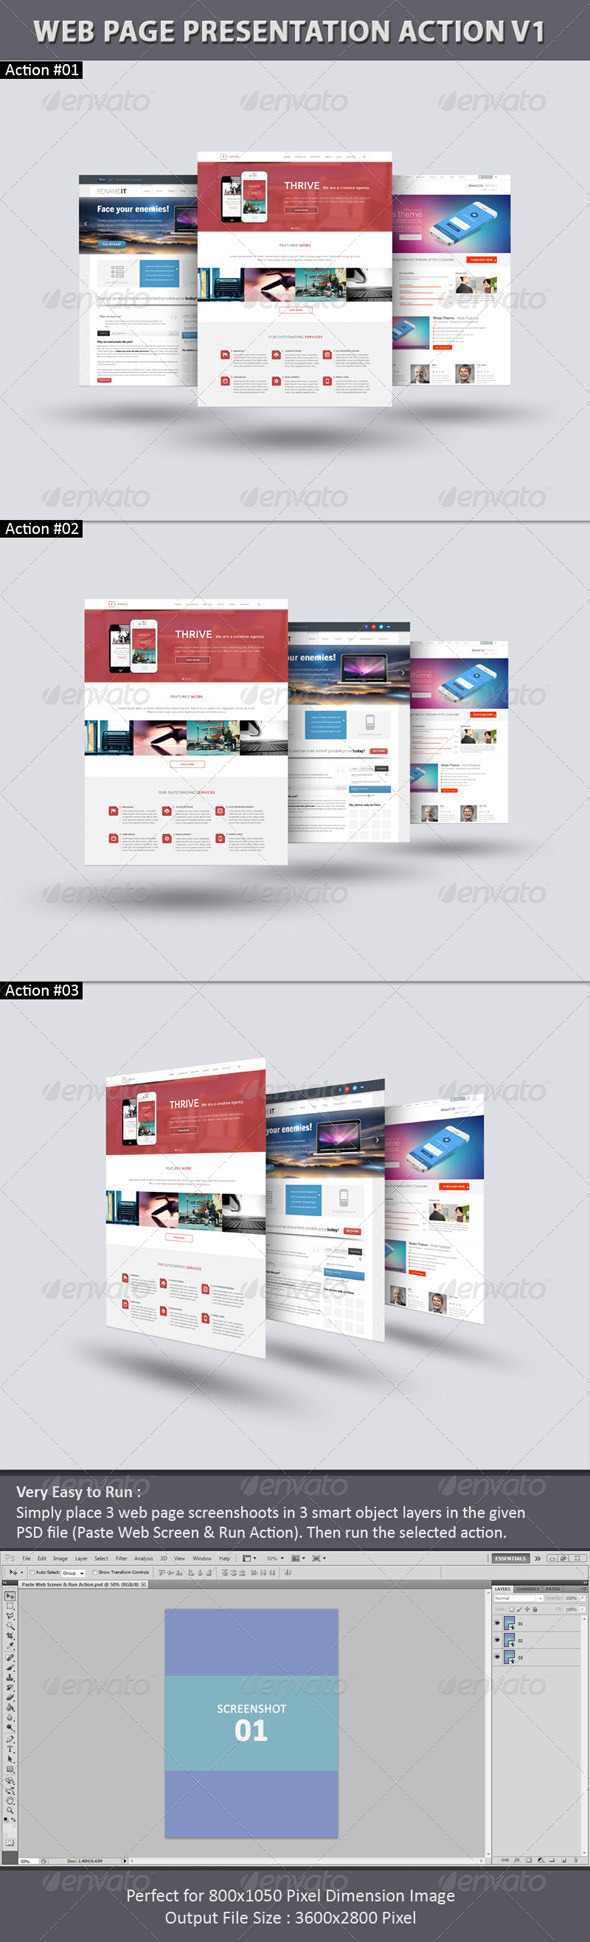 GraphicRiver Web Page Presentation Action V1 6745283